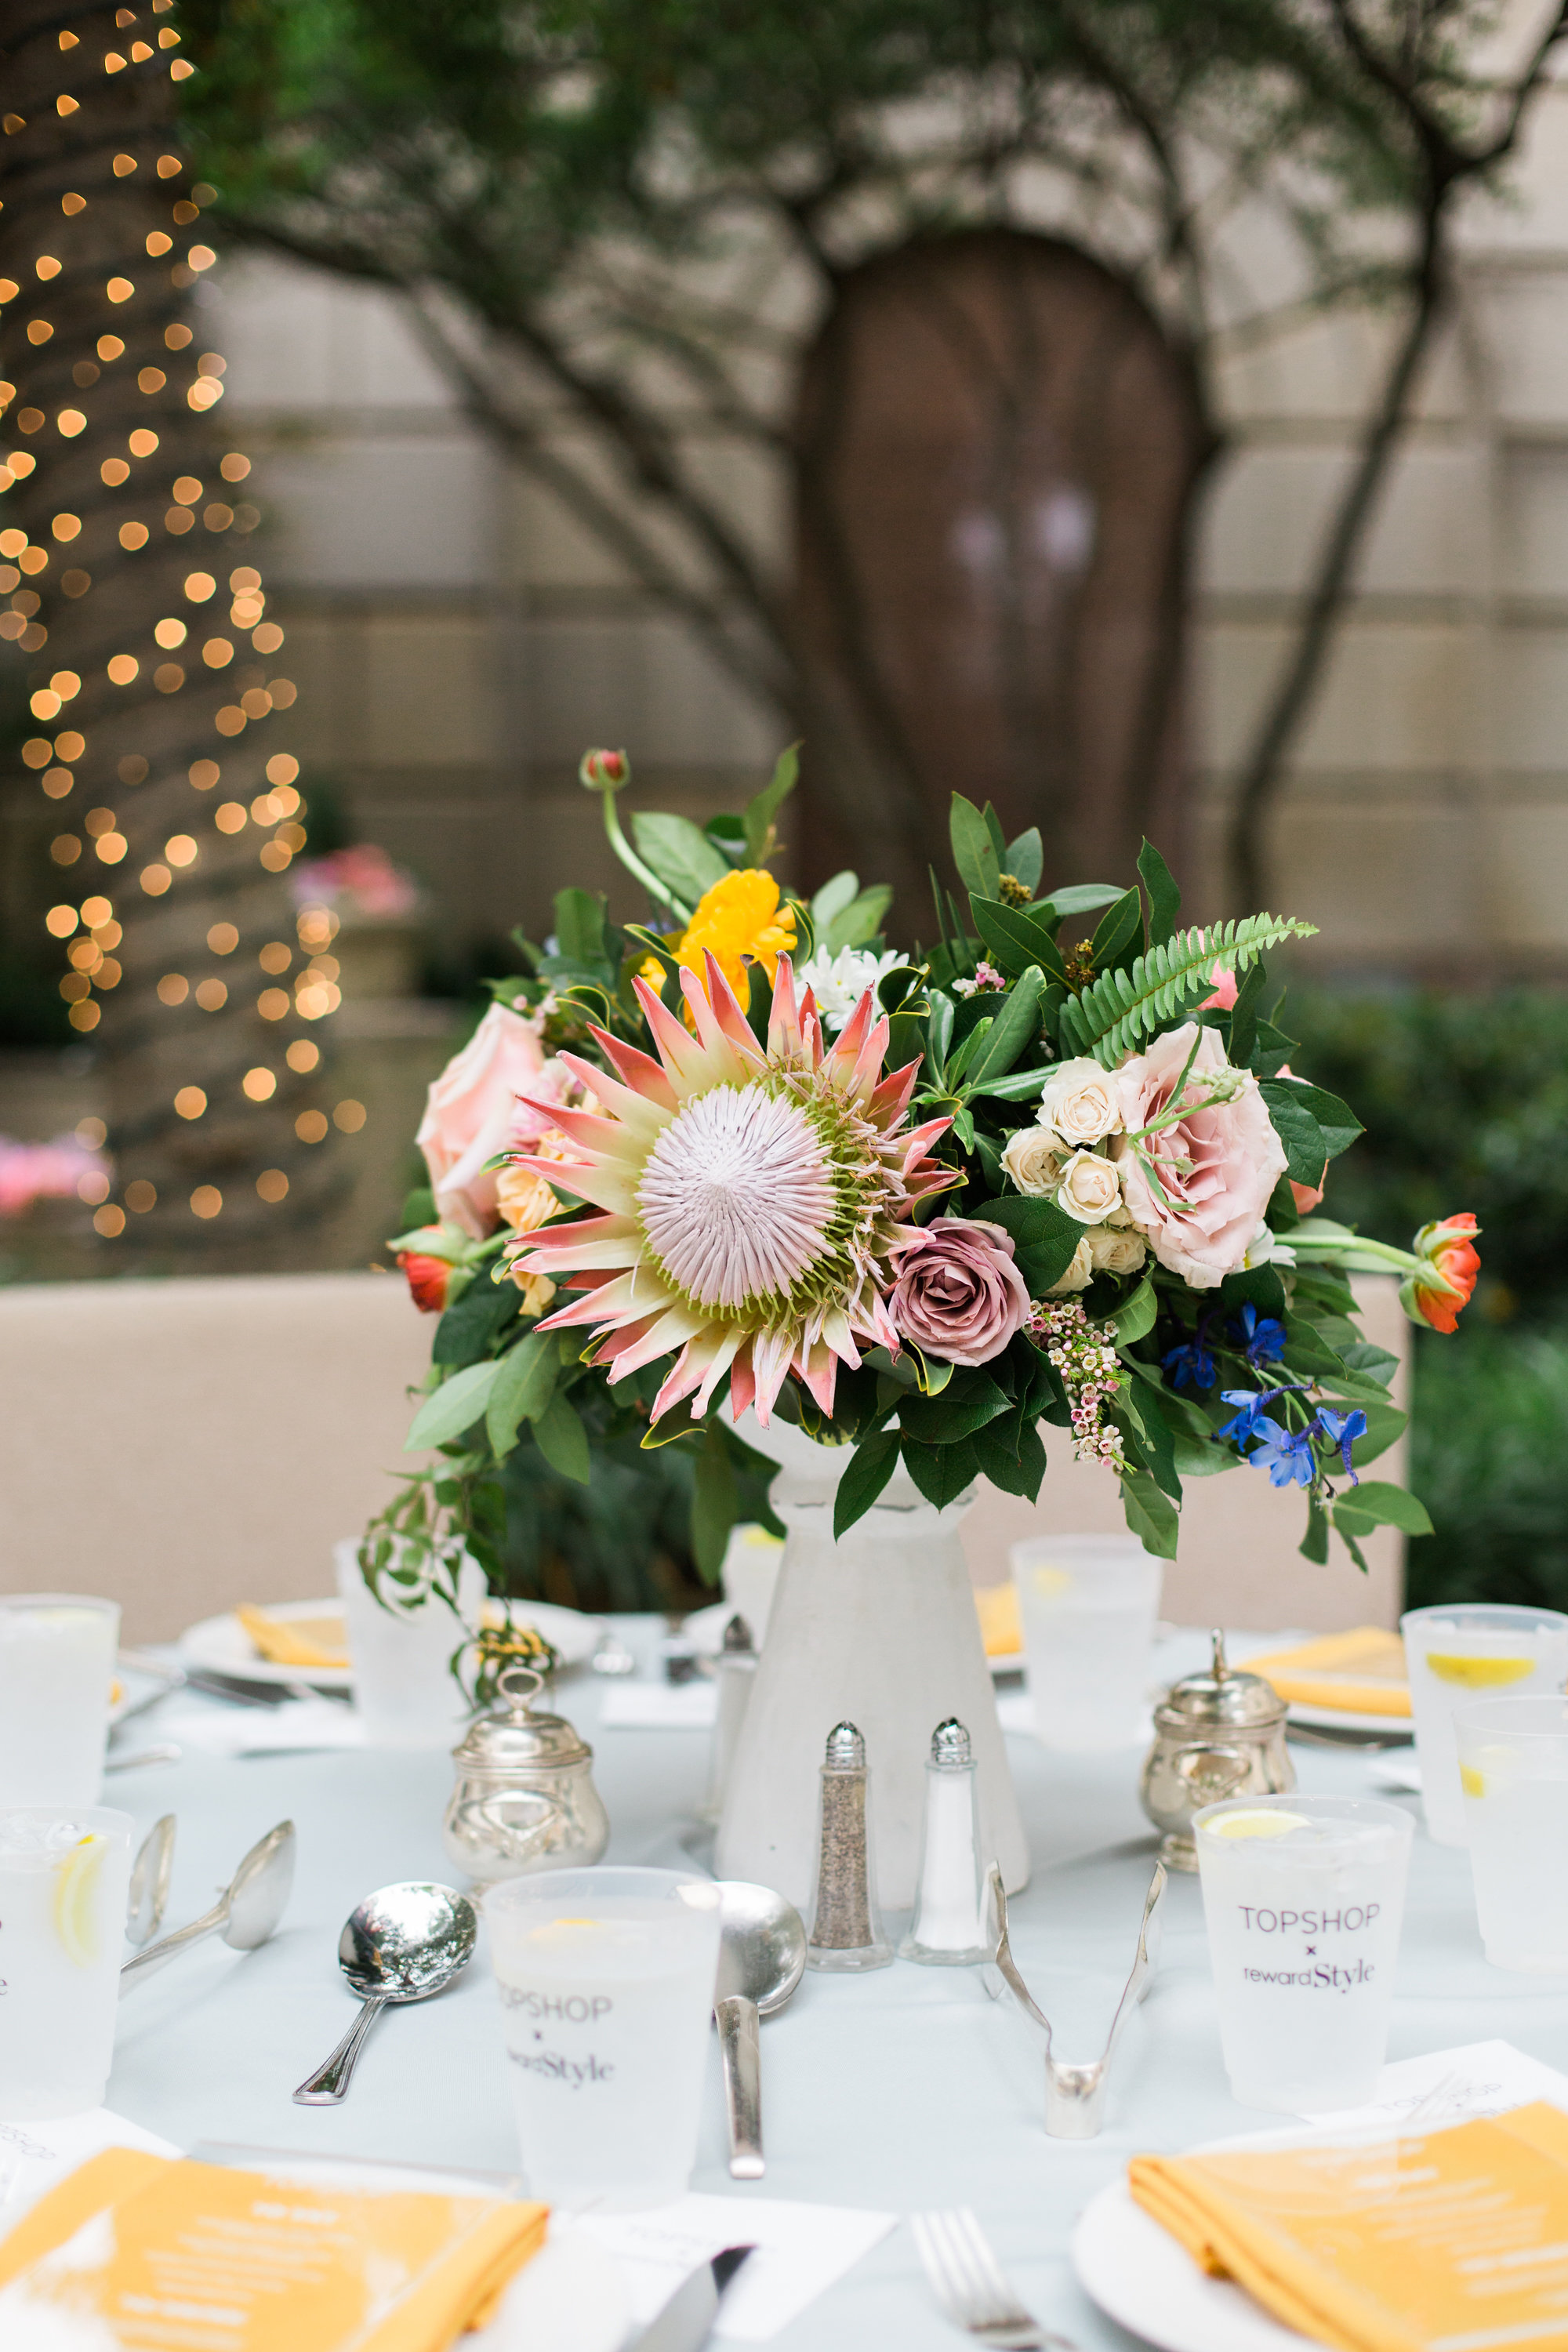 TOPSHOP + rewardStyle - Celebrate Dallas - Event Florist